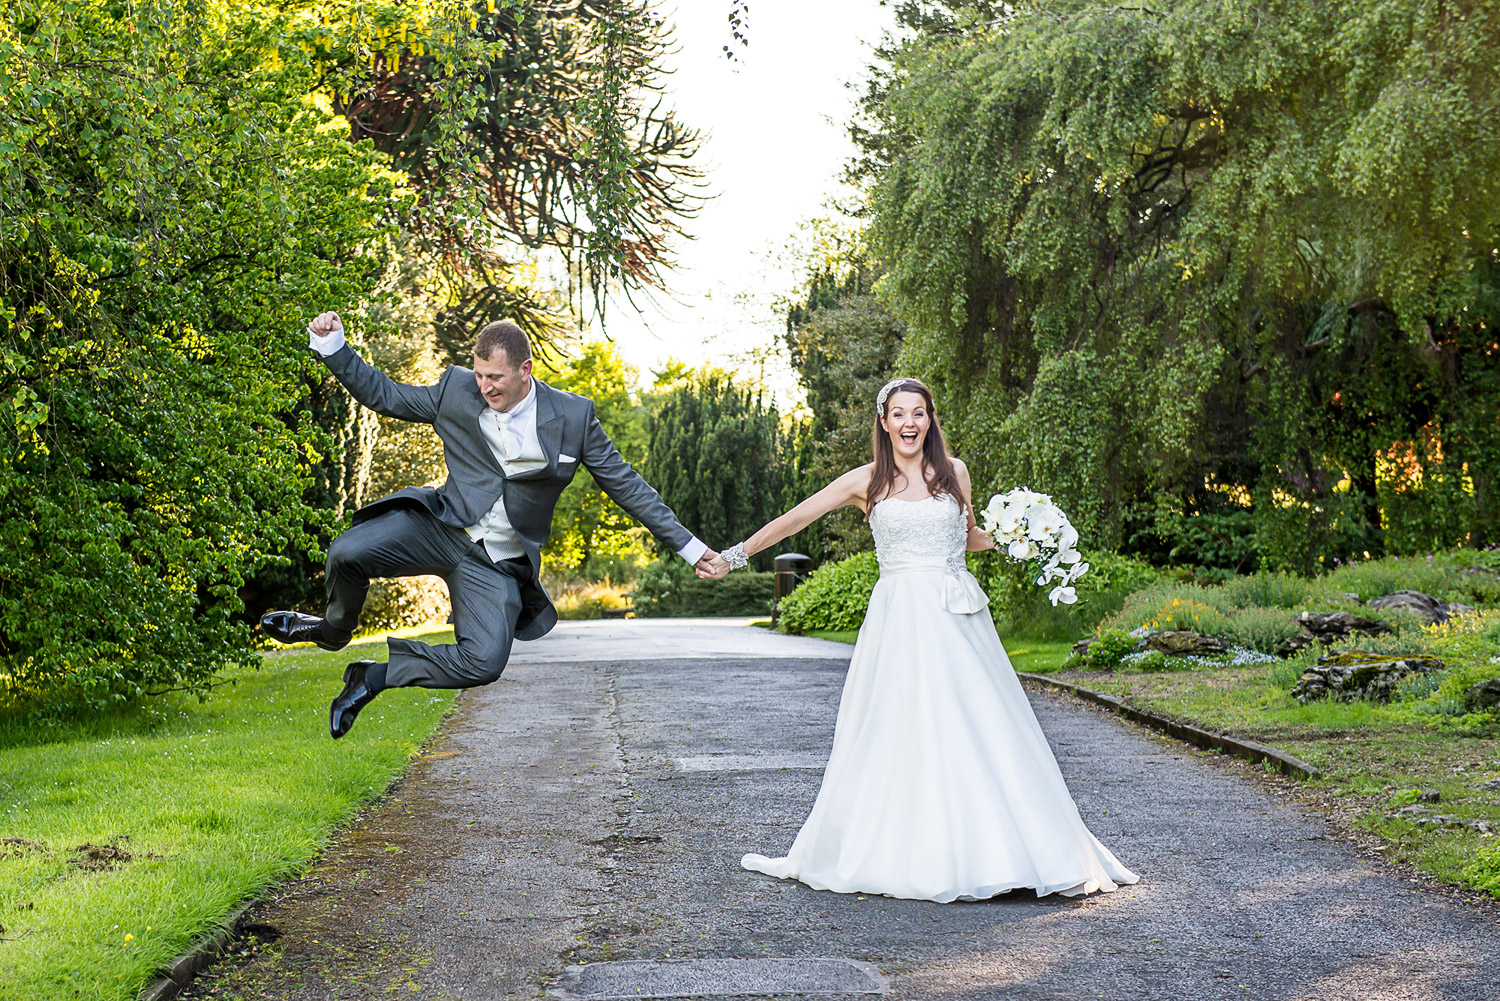 Copy of A Bride and Groom jumping in Valley Gardens, Harrogate